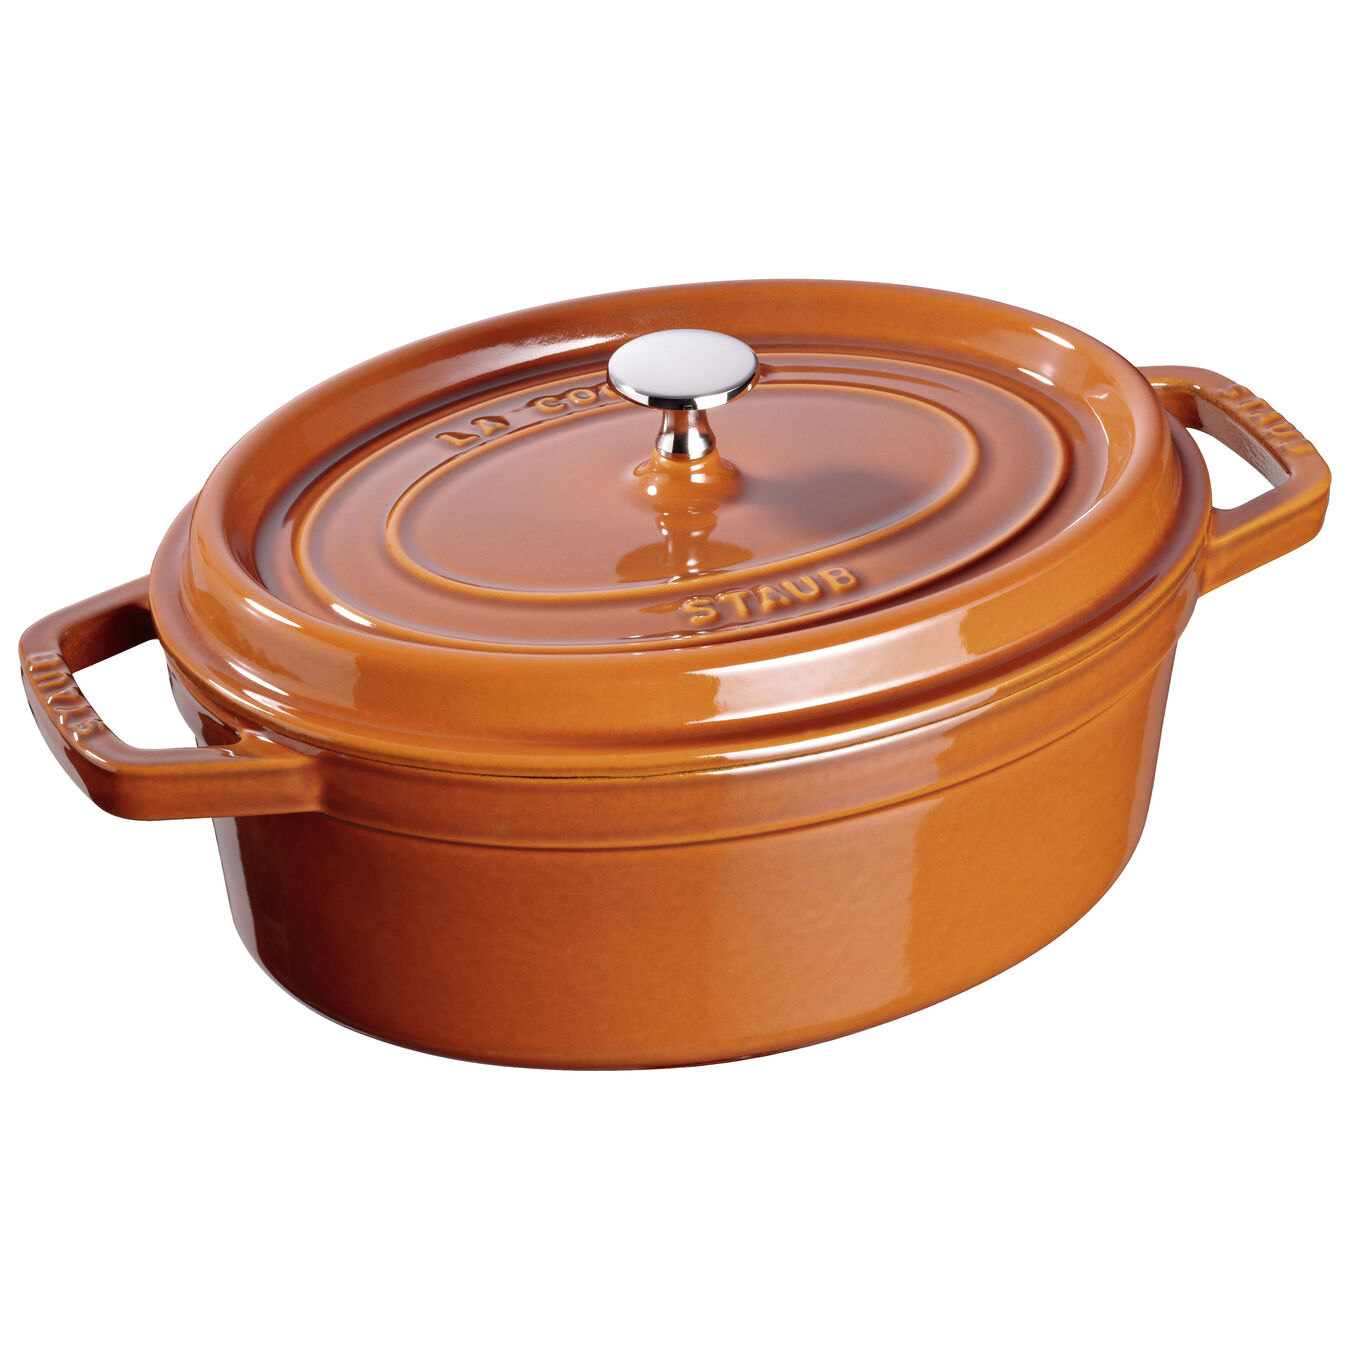 Cocotte ovale - 31 cm, cannella,,large 1